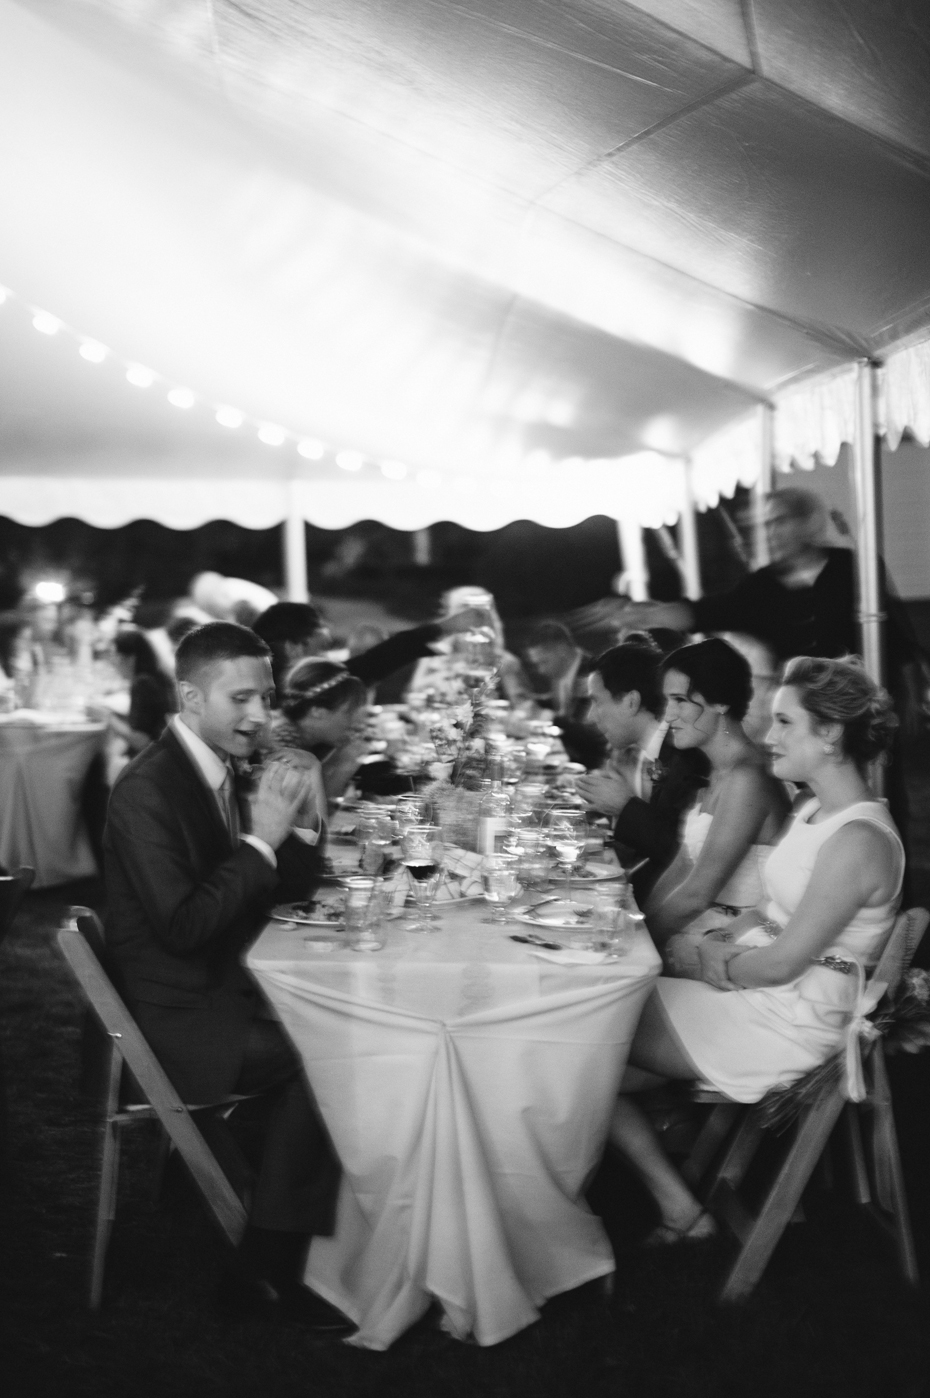 Slow shutter black and white photography at a Michigan wedding.